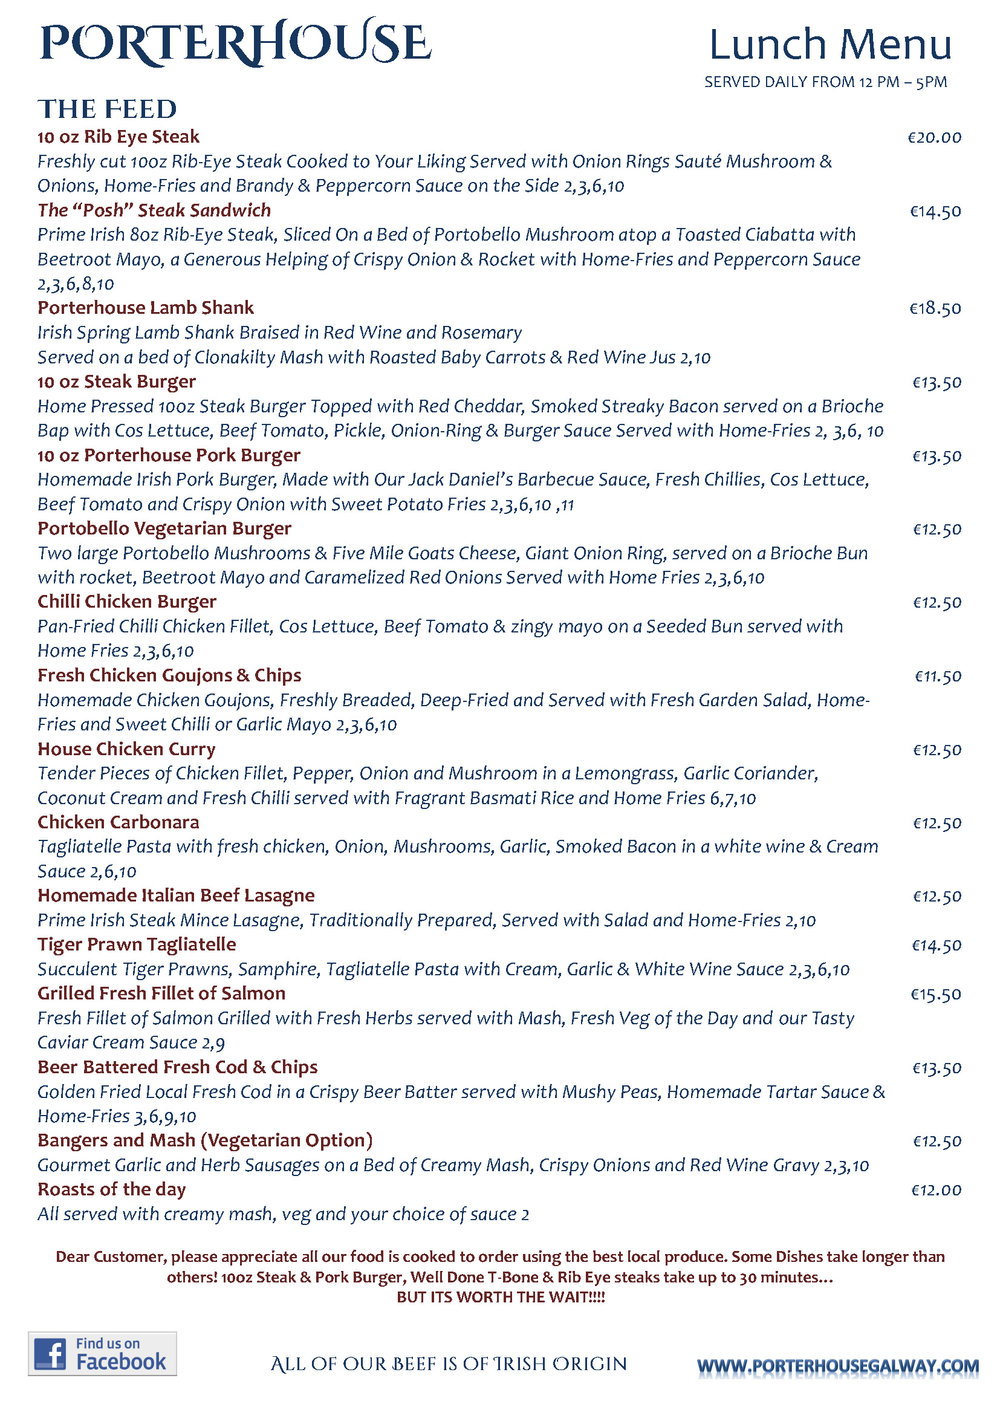 Porterhouse Galway - Lunch Menu - Final 19.07.2018_Page_2.jpg